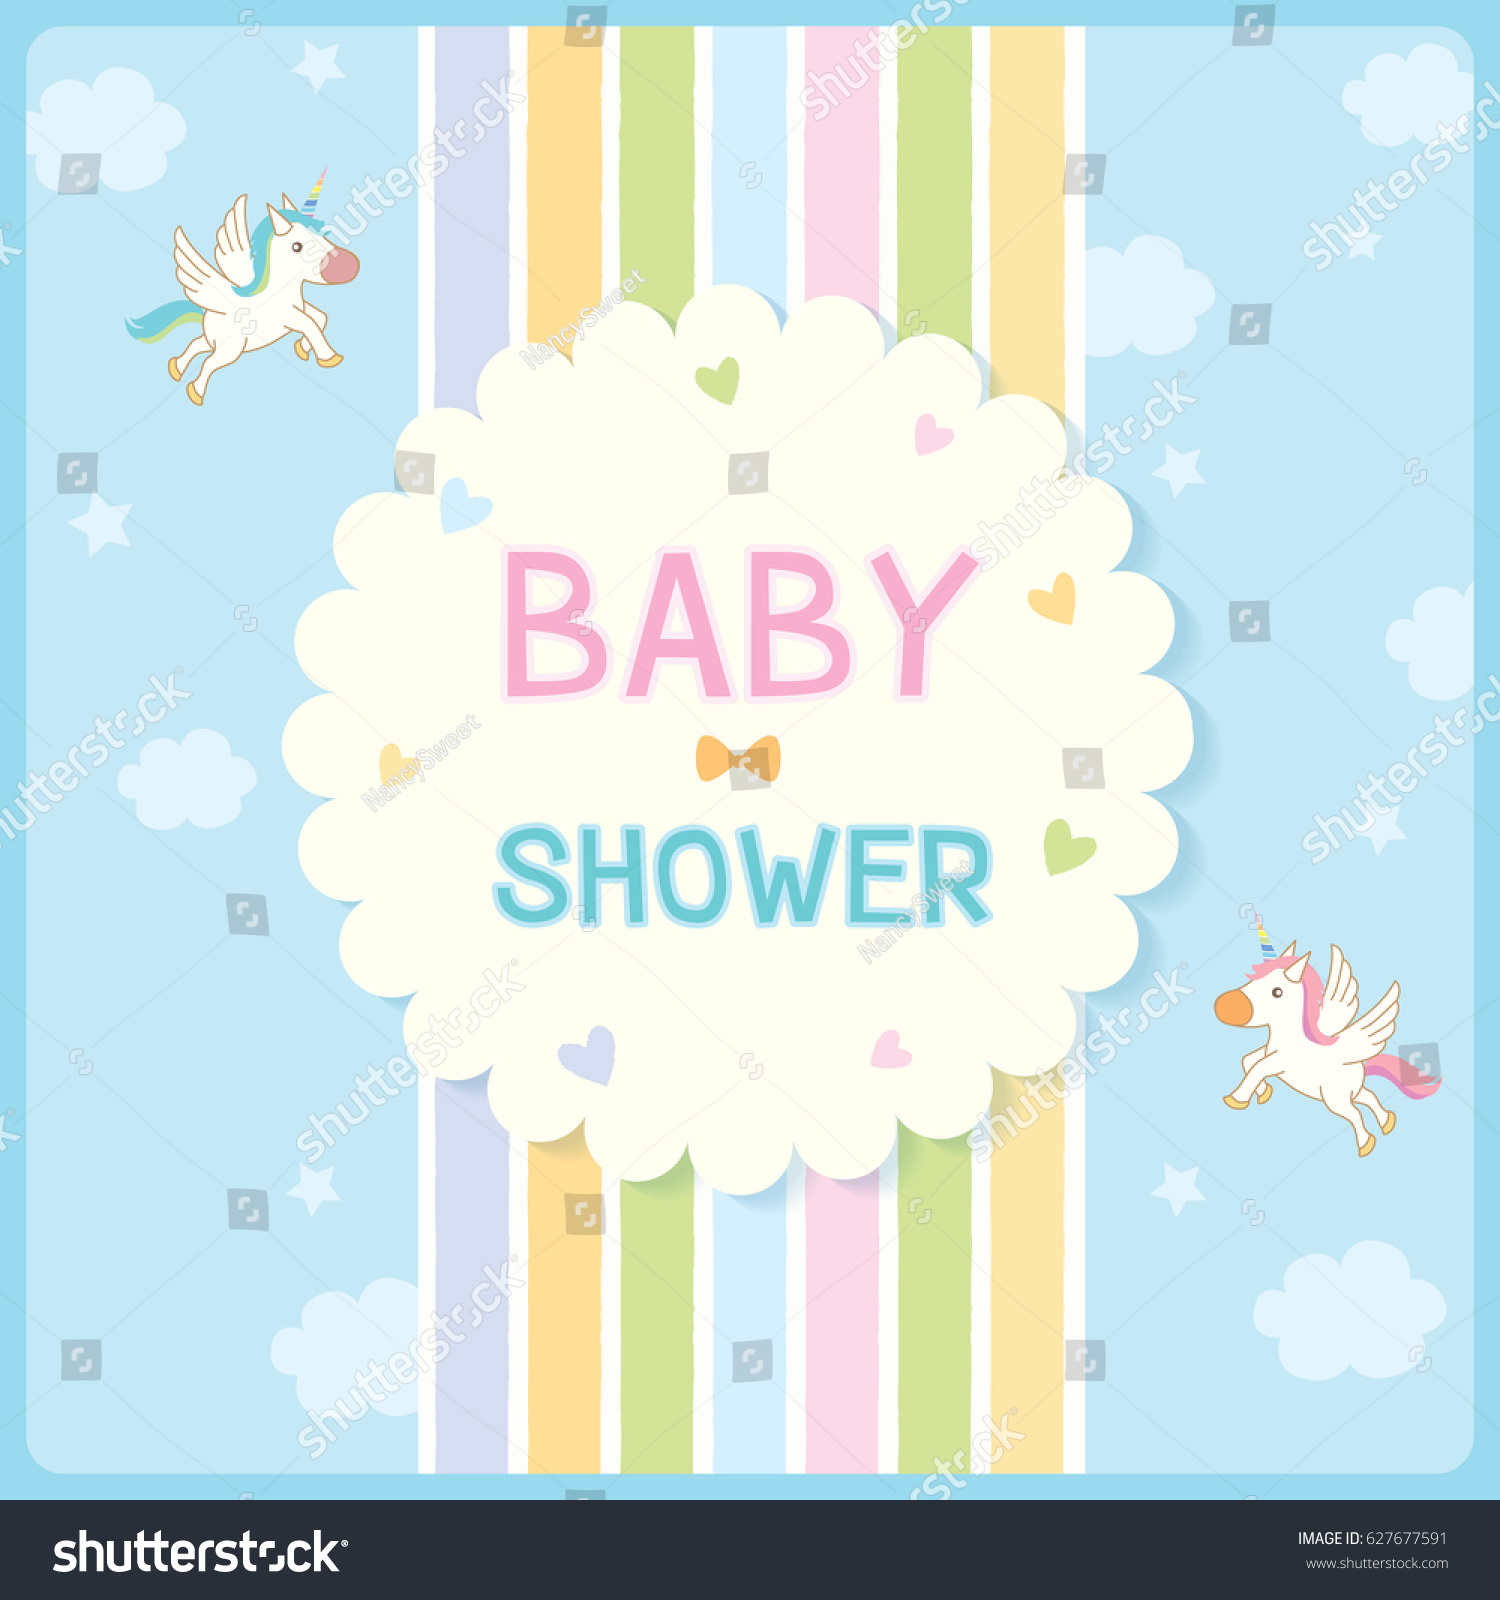 Baby shower invitation card newborn design stock vector royalty baby shower invitation card for newborn design with rainbow and blue sky background decorated with cute filmwisefo